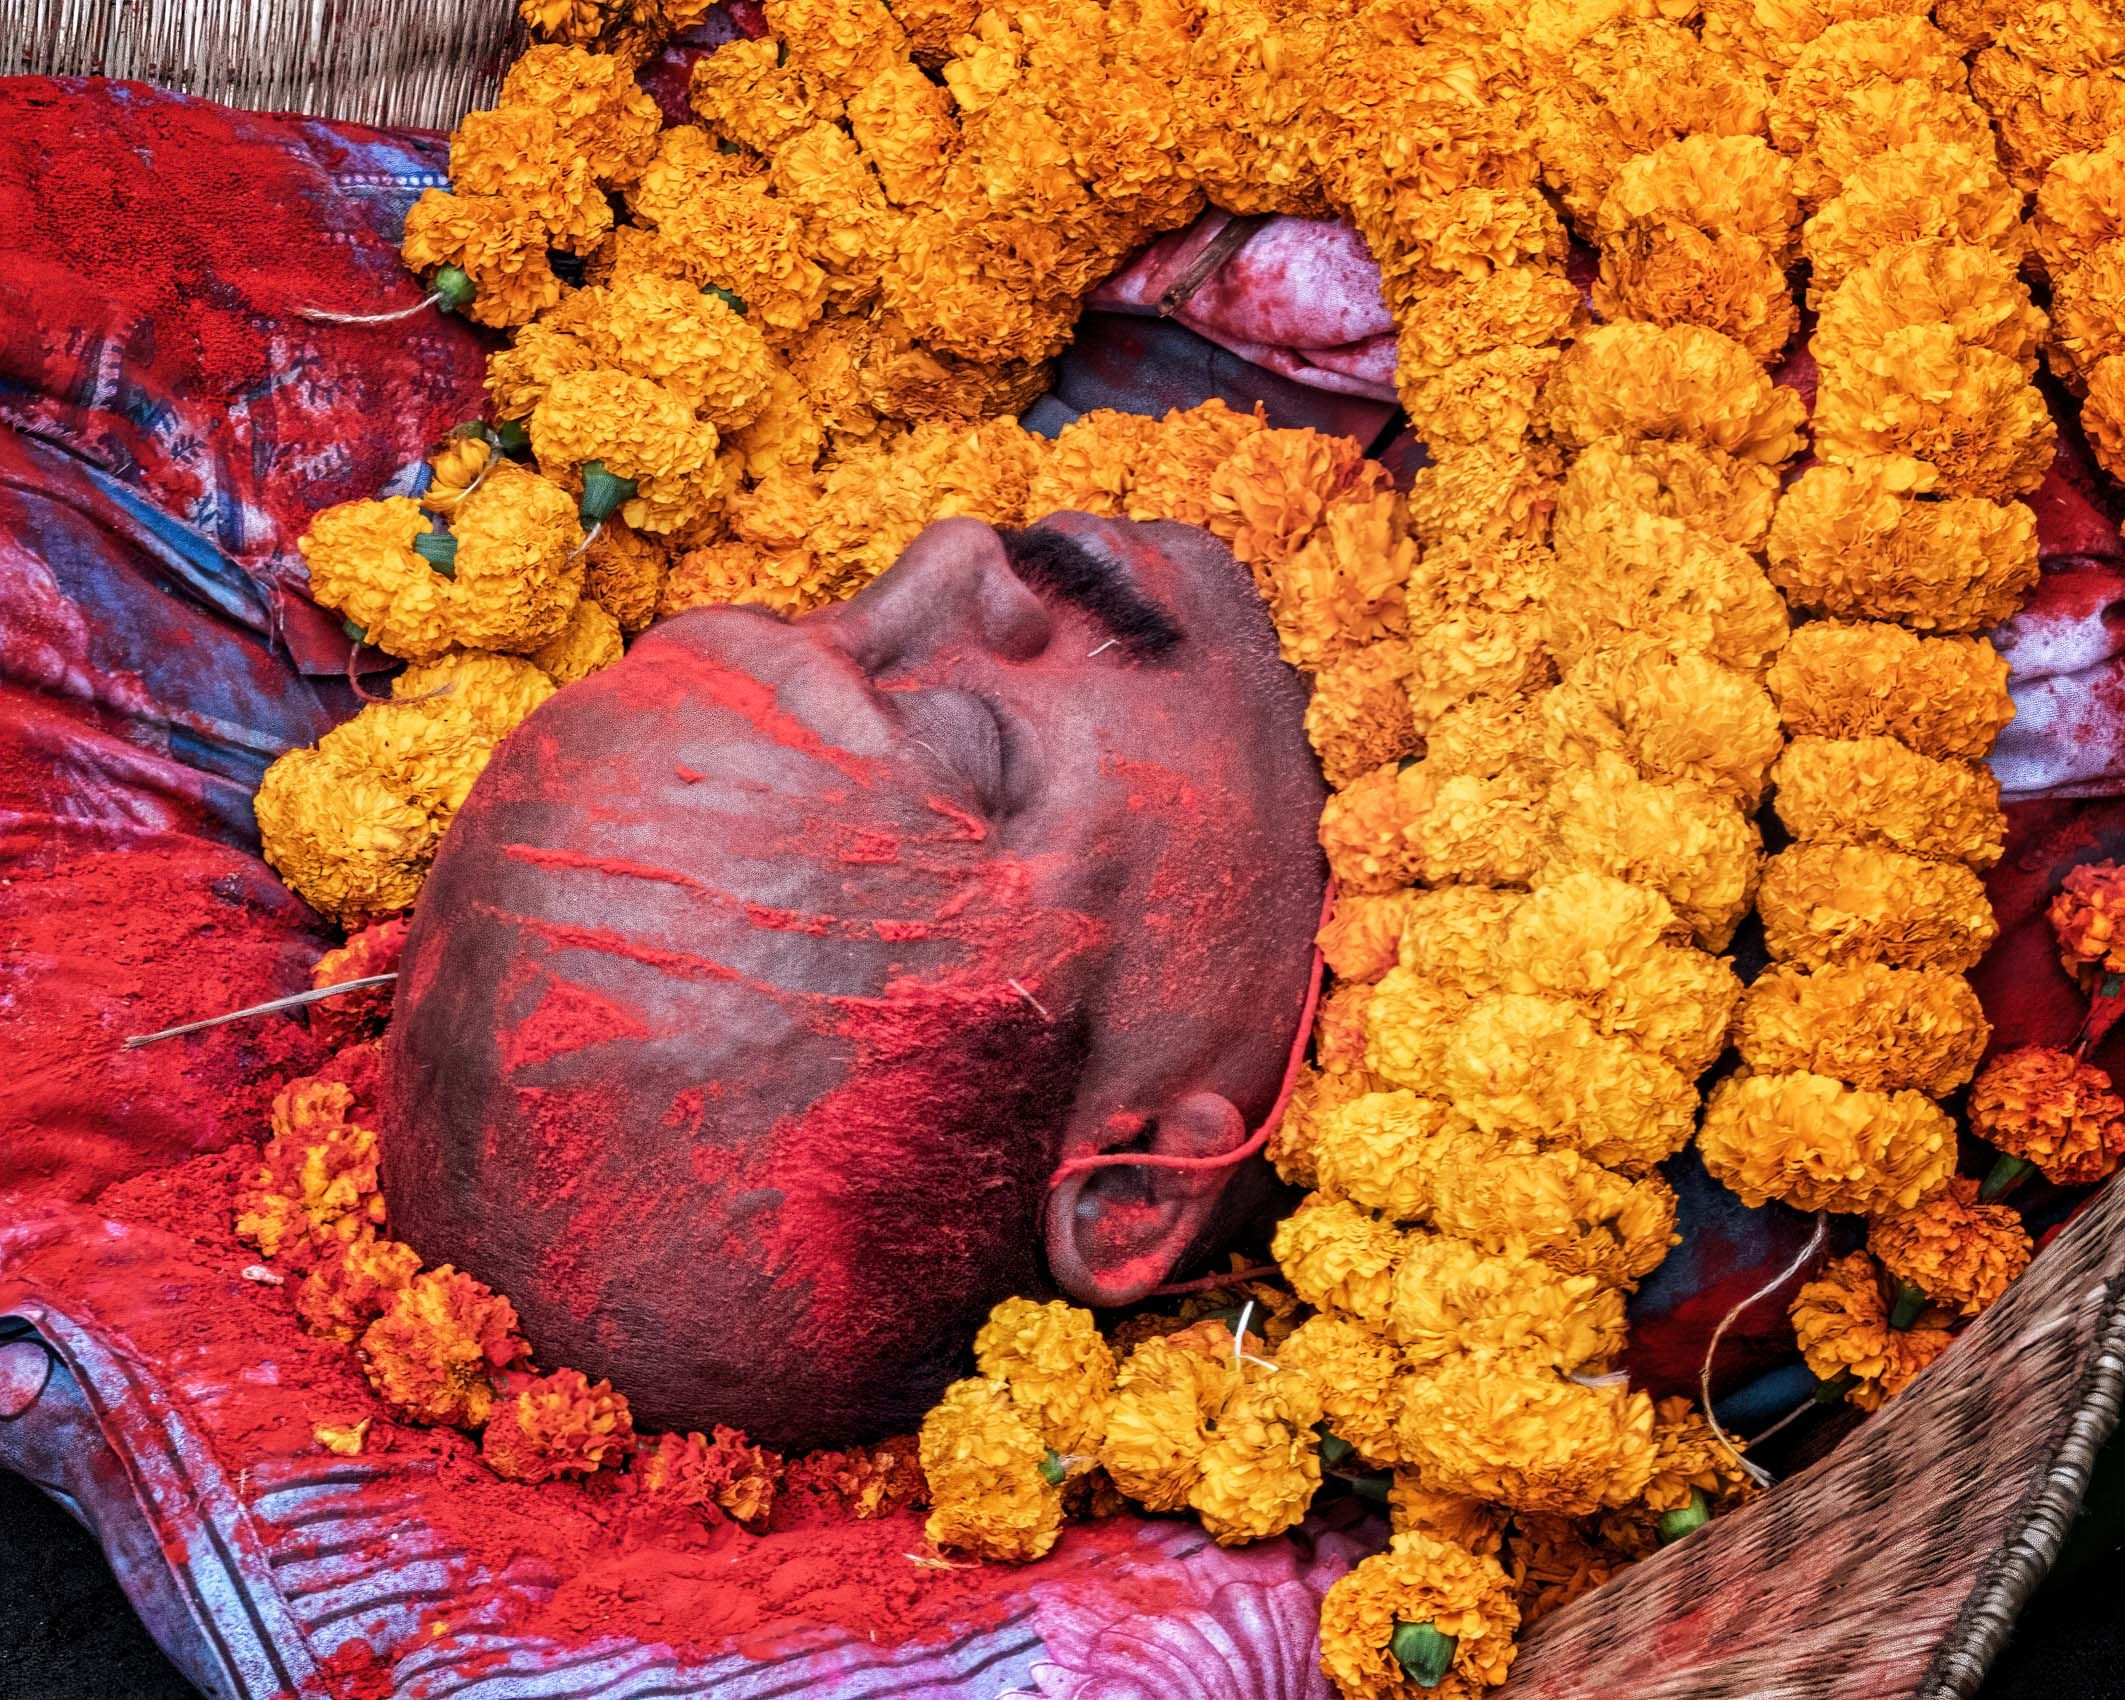 ANTYESTI: The Dead and the Living at Swargadwar, Puri's Cremation Ground